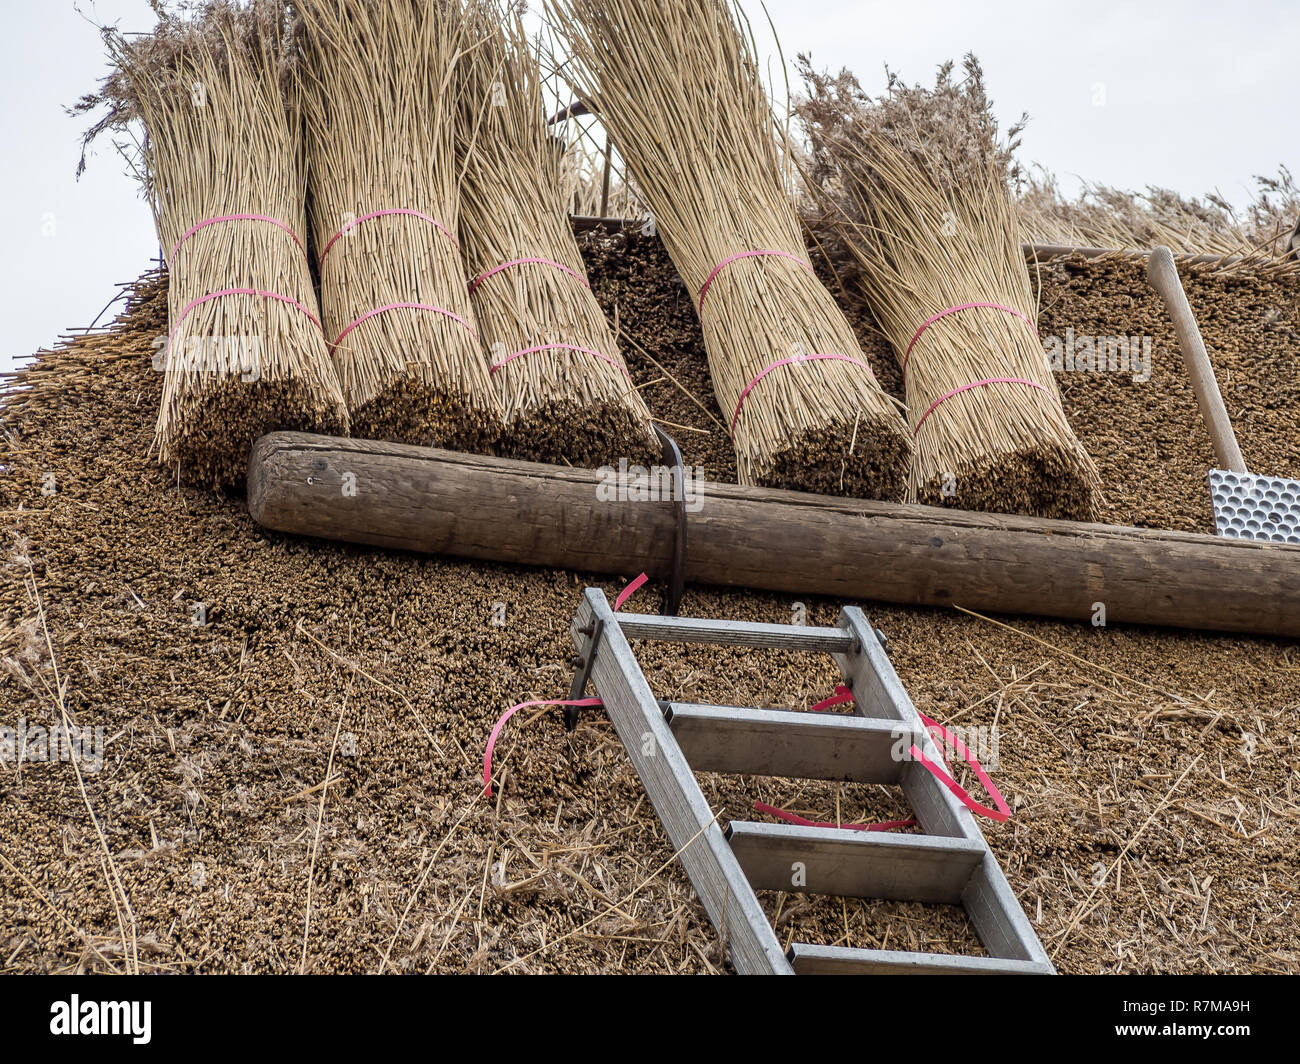 New thatched roof construction work - Stock Image